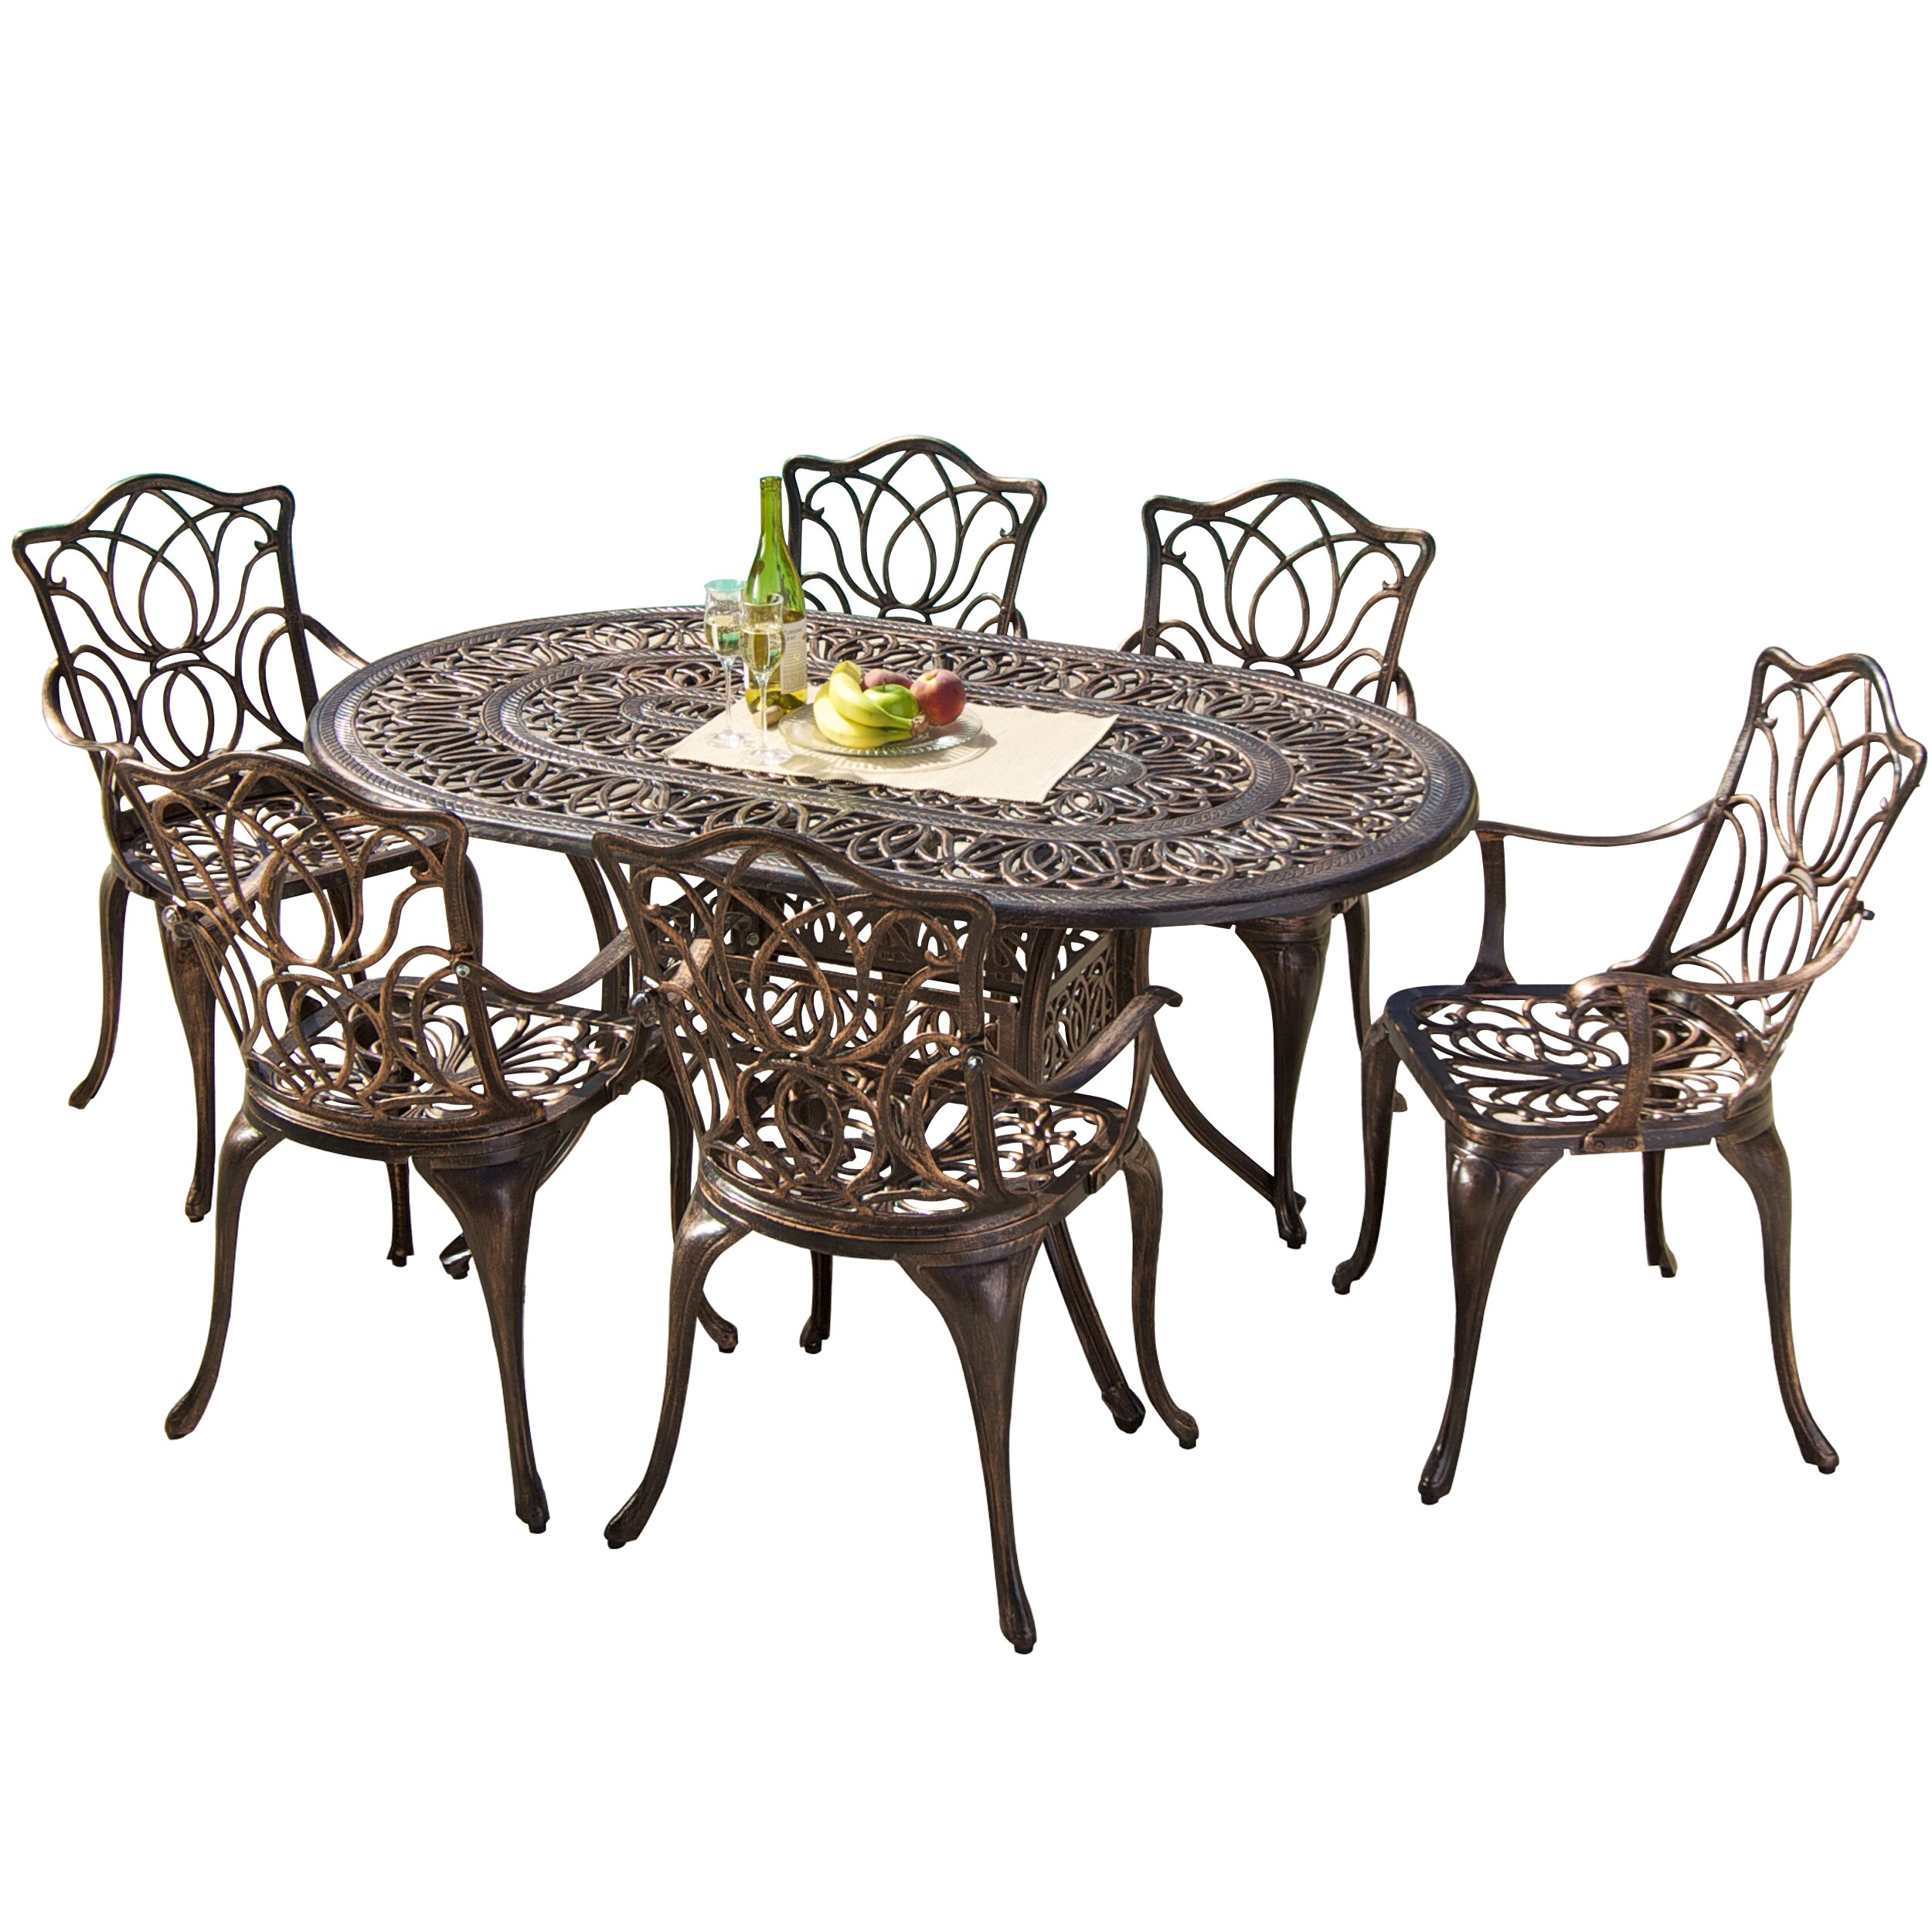 Rosalind Wheeler Dorey Outdoor Dining Table amp Reviews  : Dorey Dining Table RSWH2542 from www.wayfair.com size 2500 x 2500 jpeg 864kB